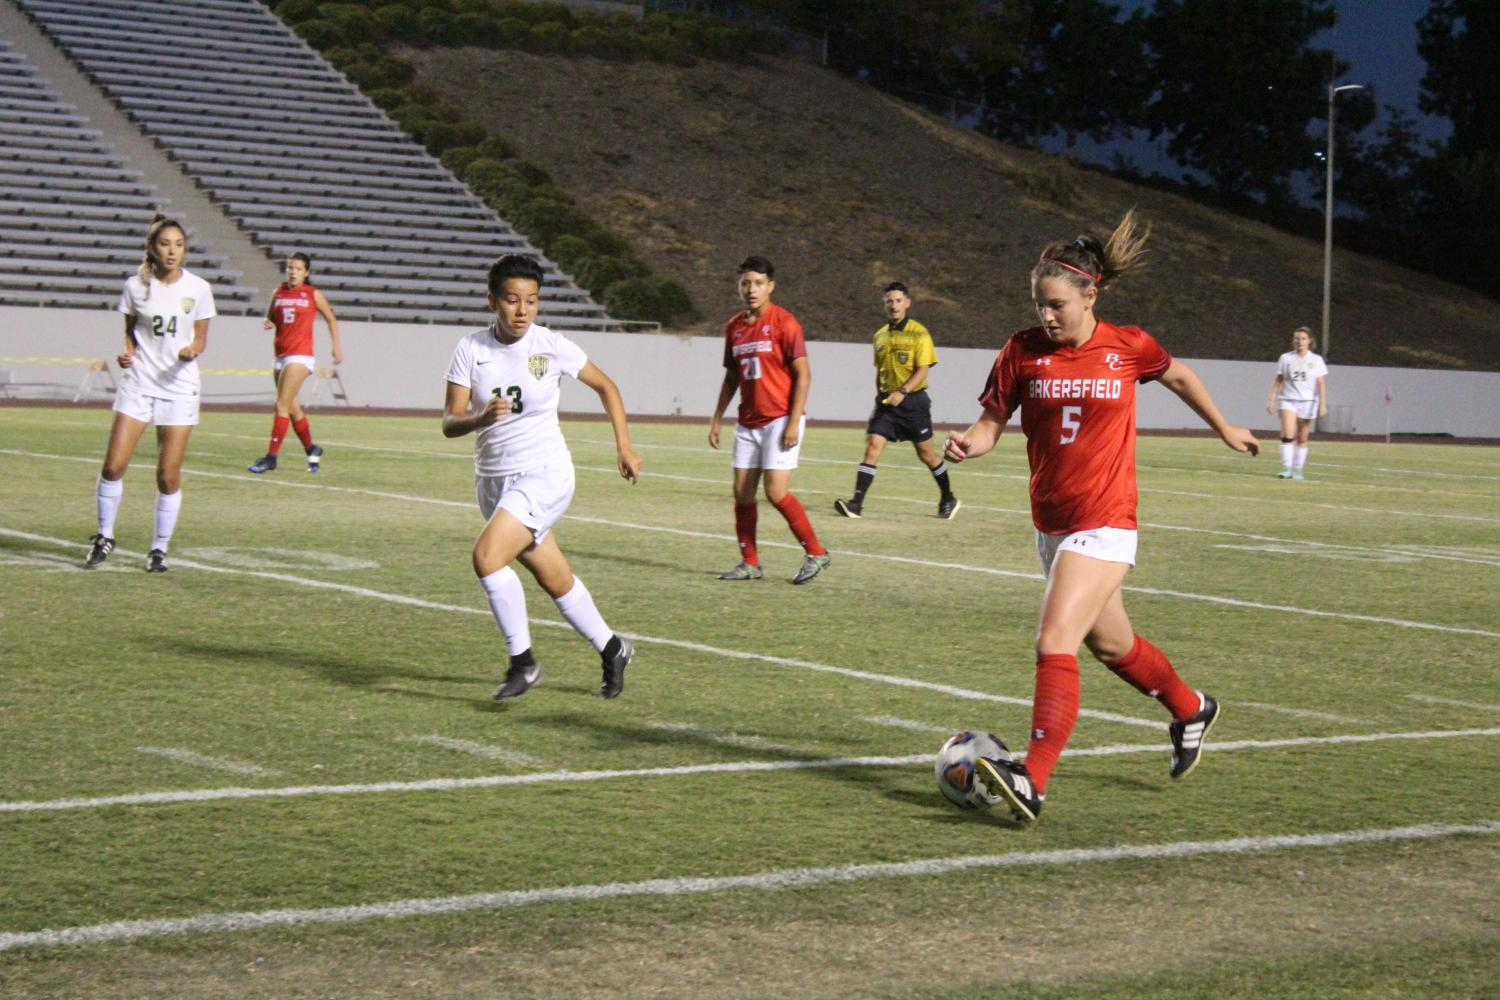 Delaney Boyer is followed by a LA Valley player as she travels the ball toward the opposing teams goal box.